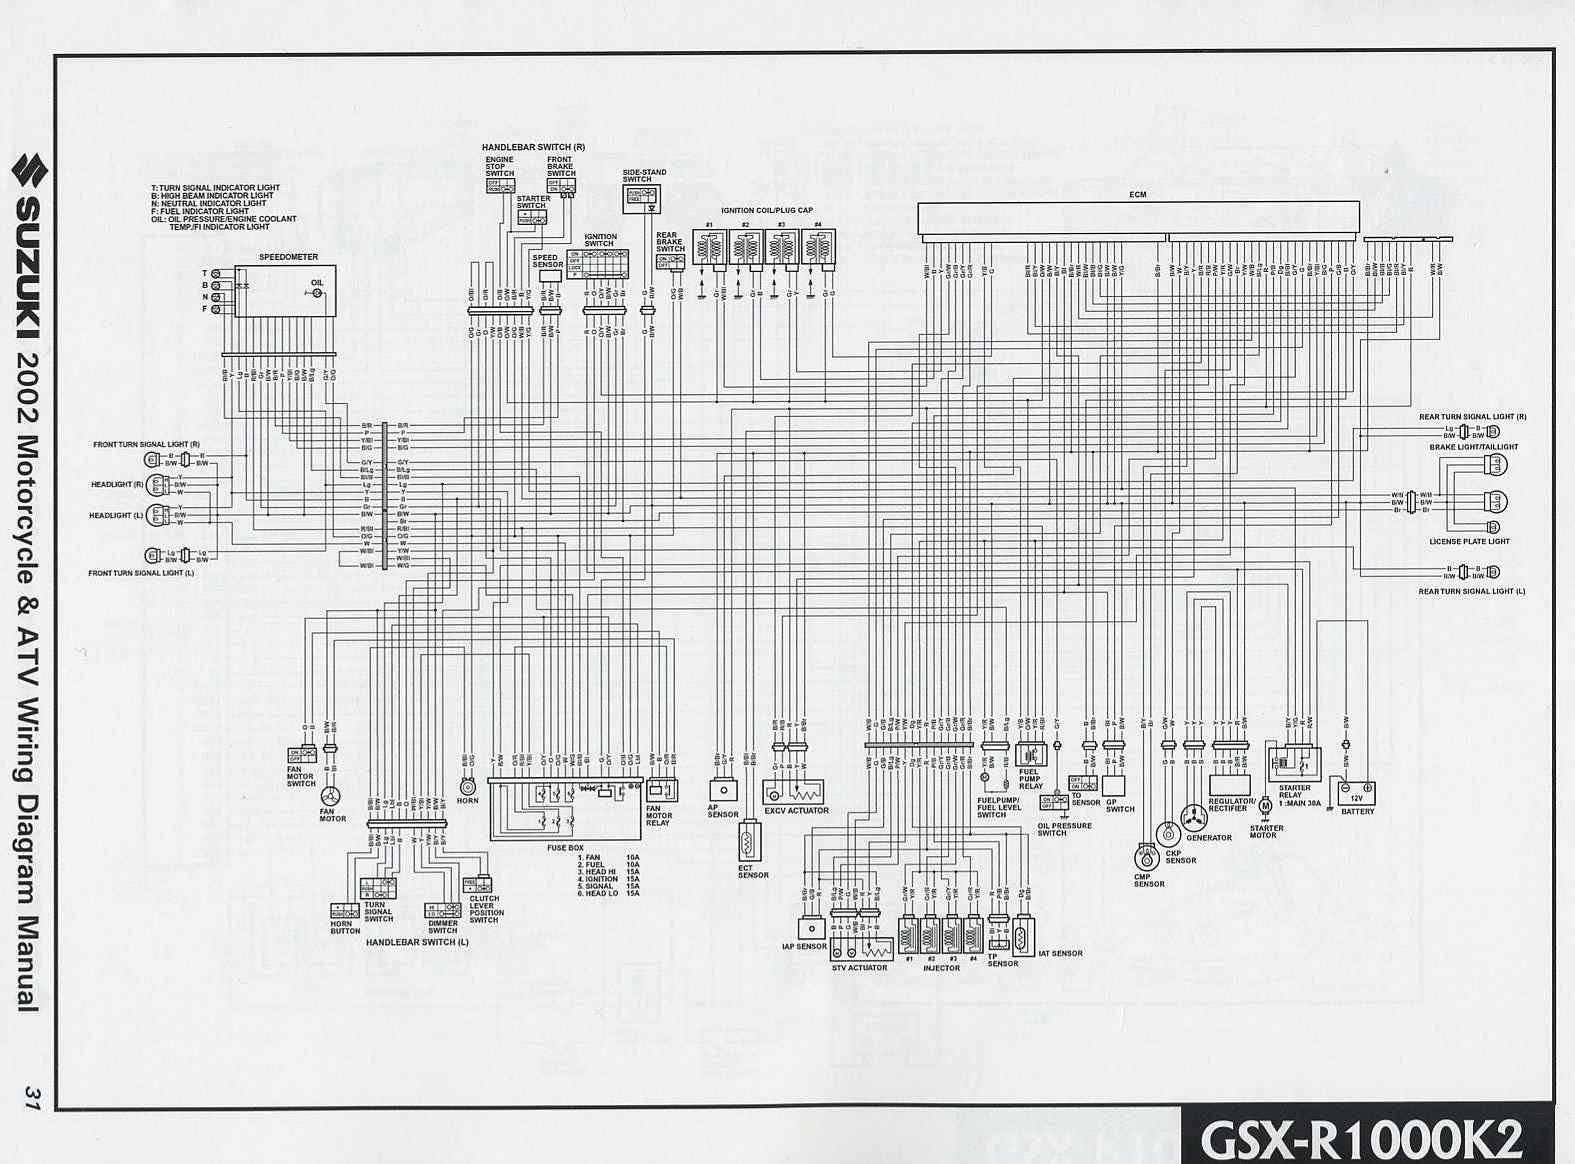 Suzuki GSXR1000 K2 2002 Motorcycle    Wiring       Diagram      All about    Wiring       Diagrams